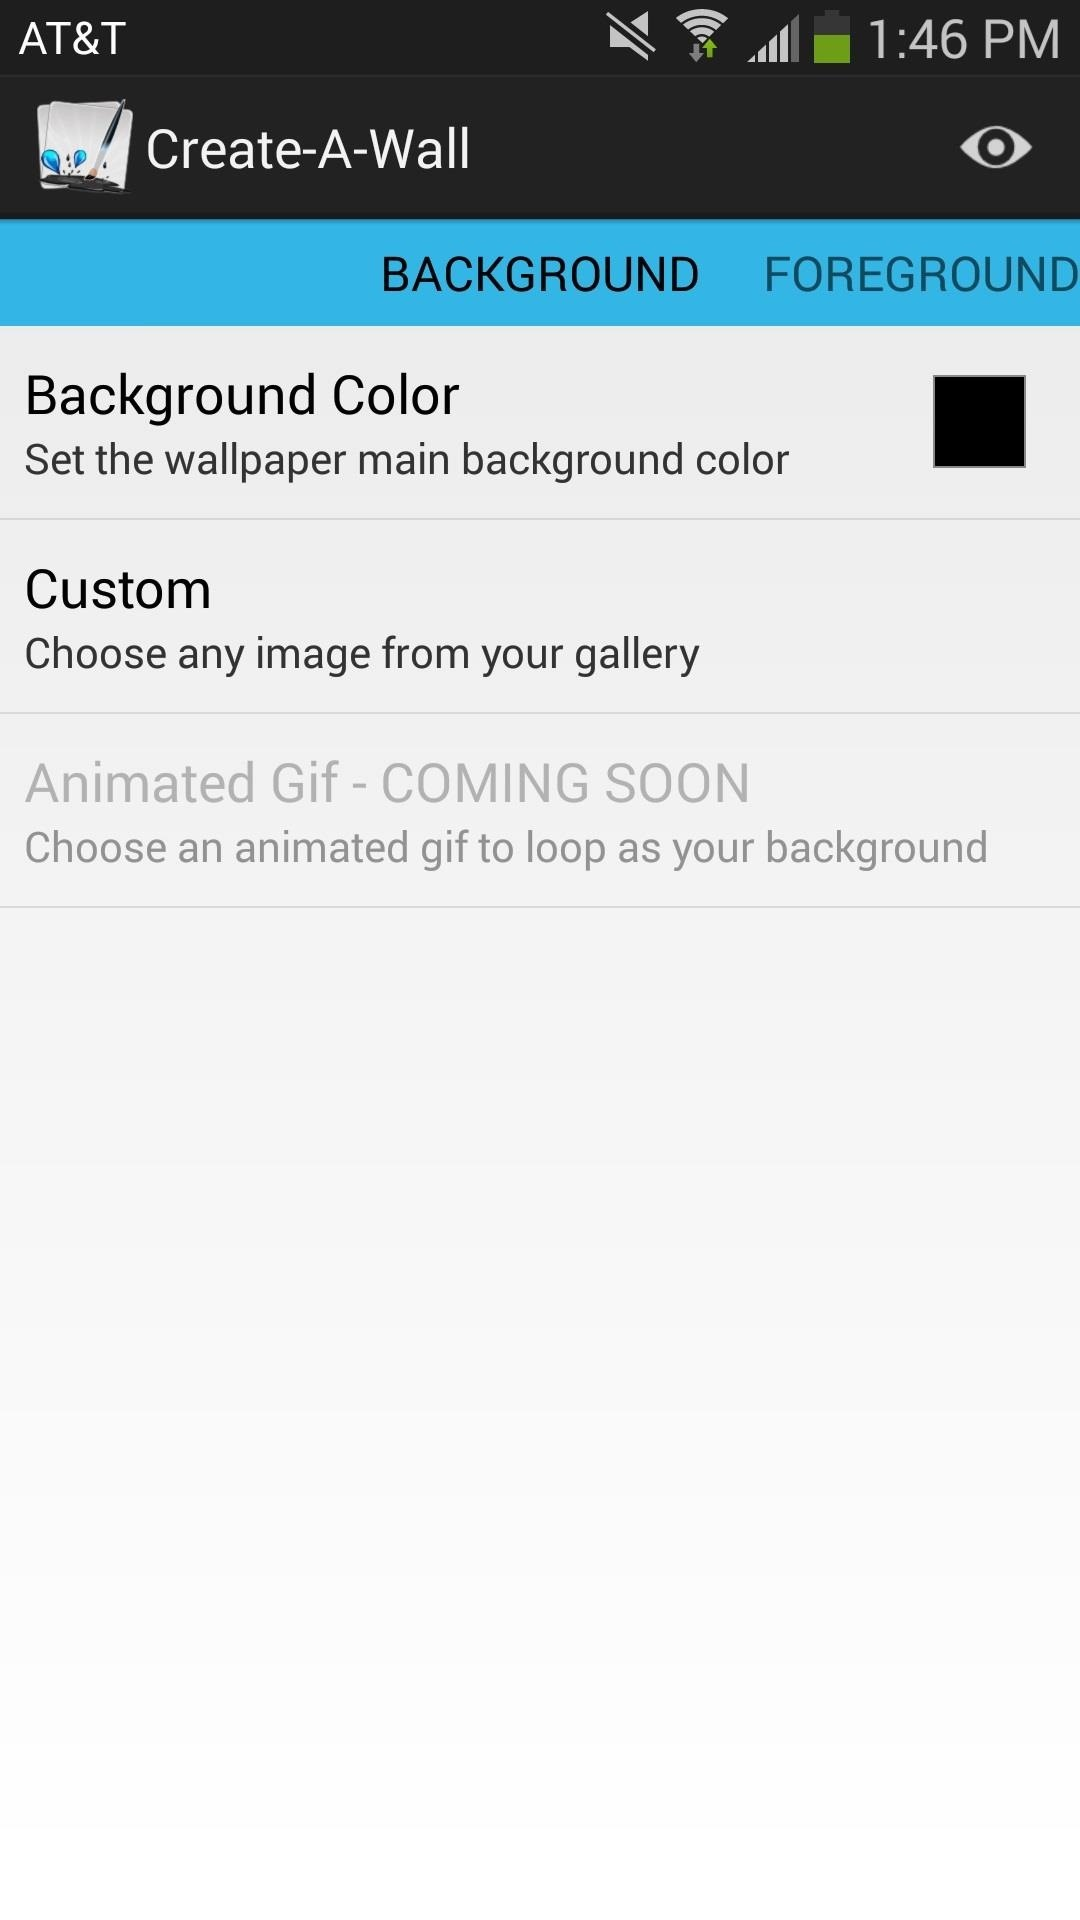 How to Add Floating Live Animations to Any Custom Wallpaper on a Galaxy Note 3